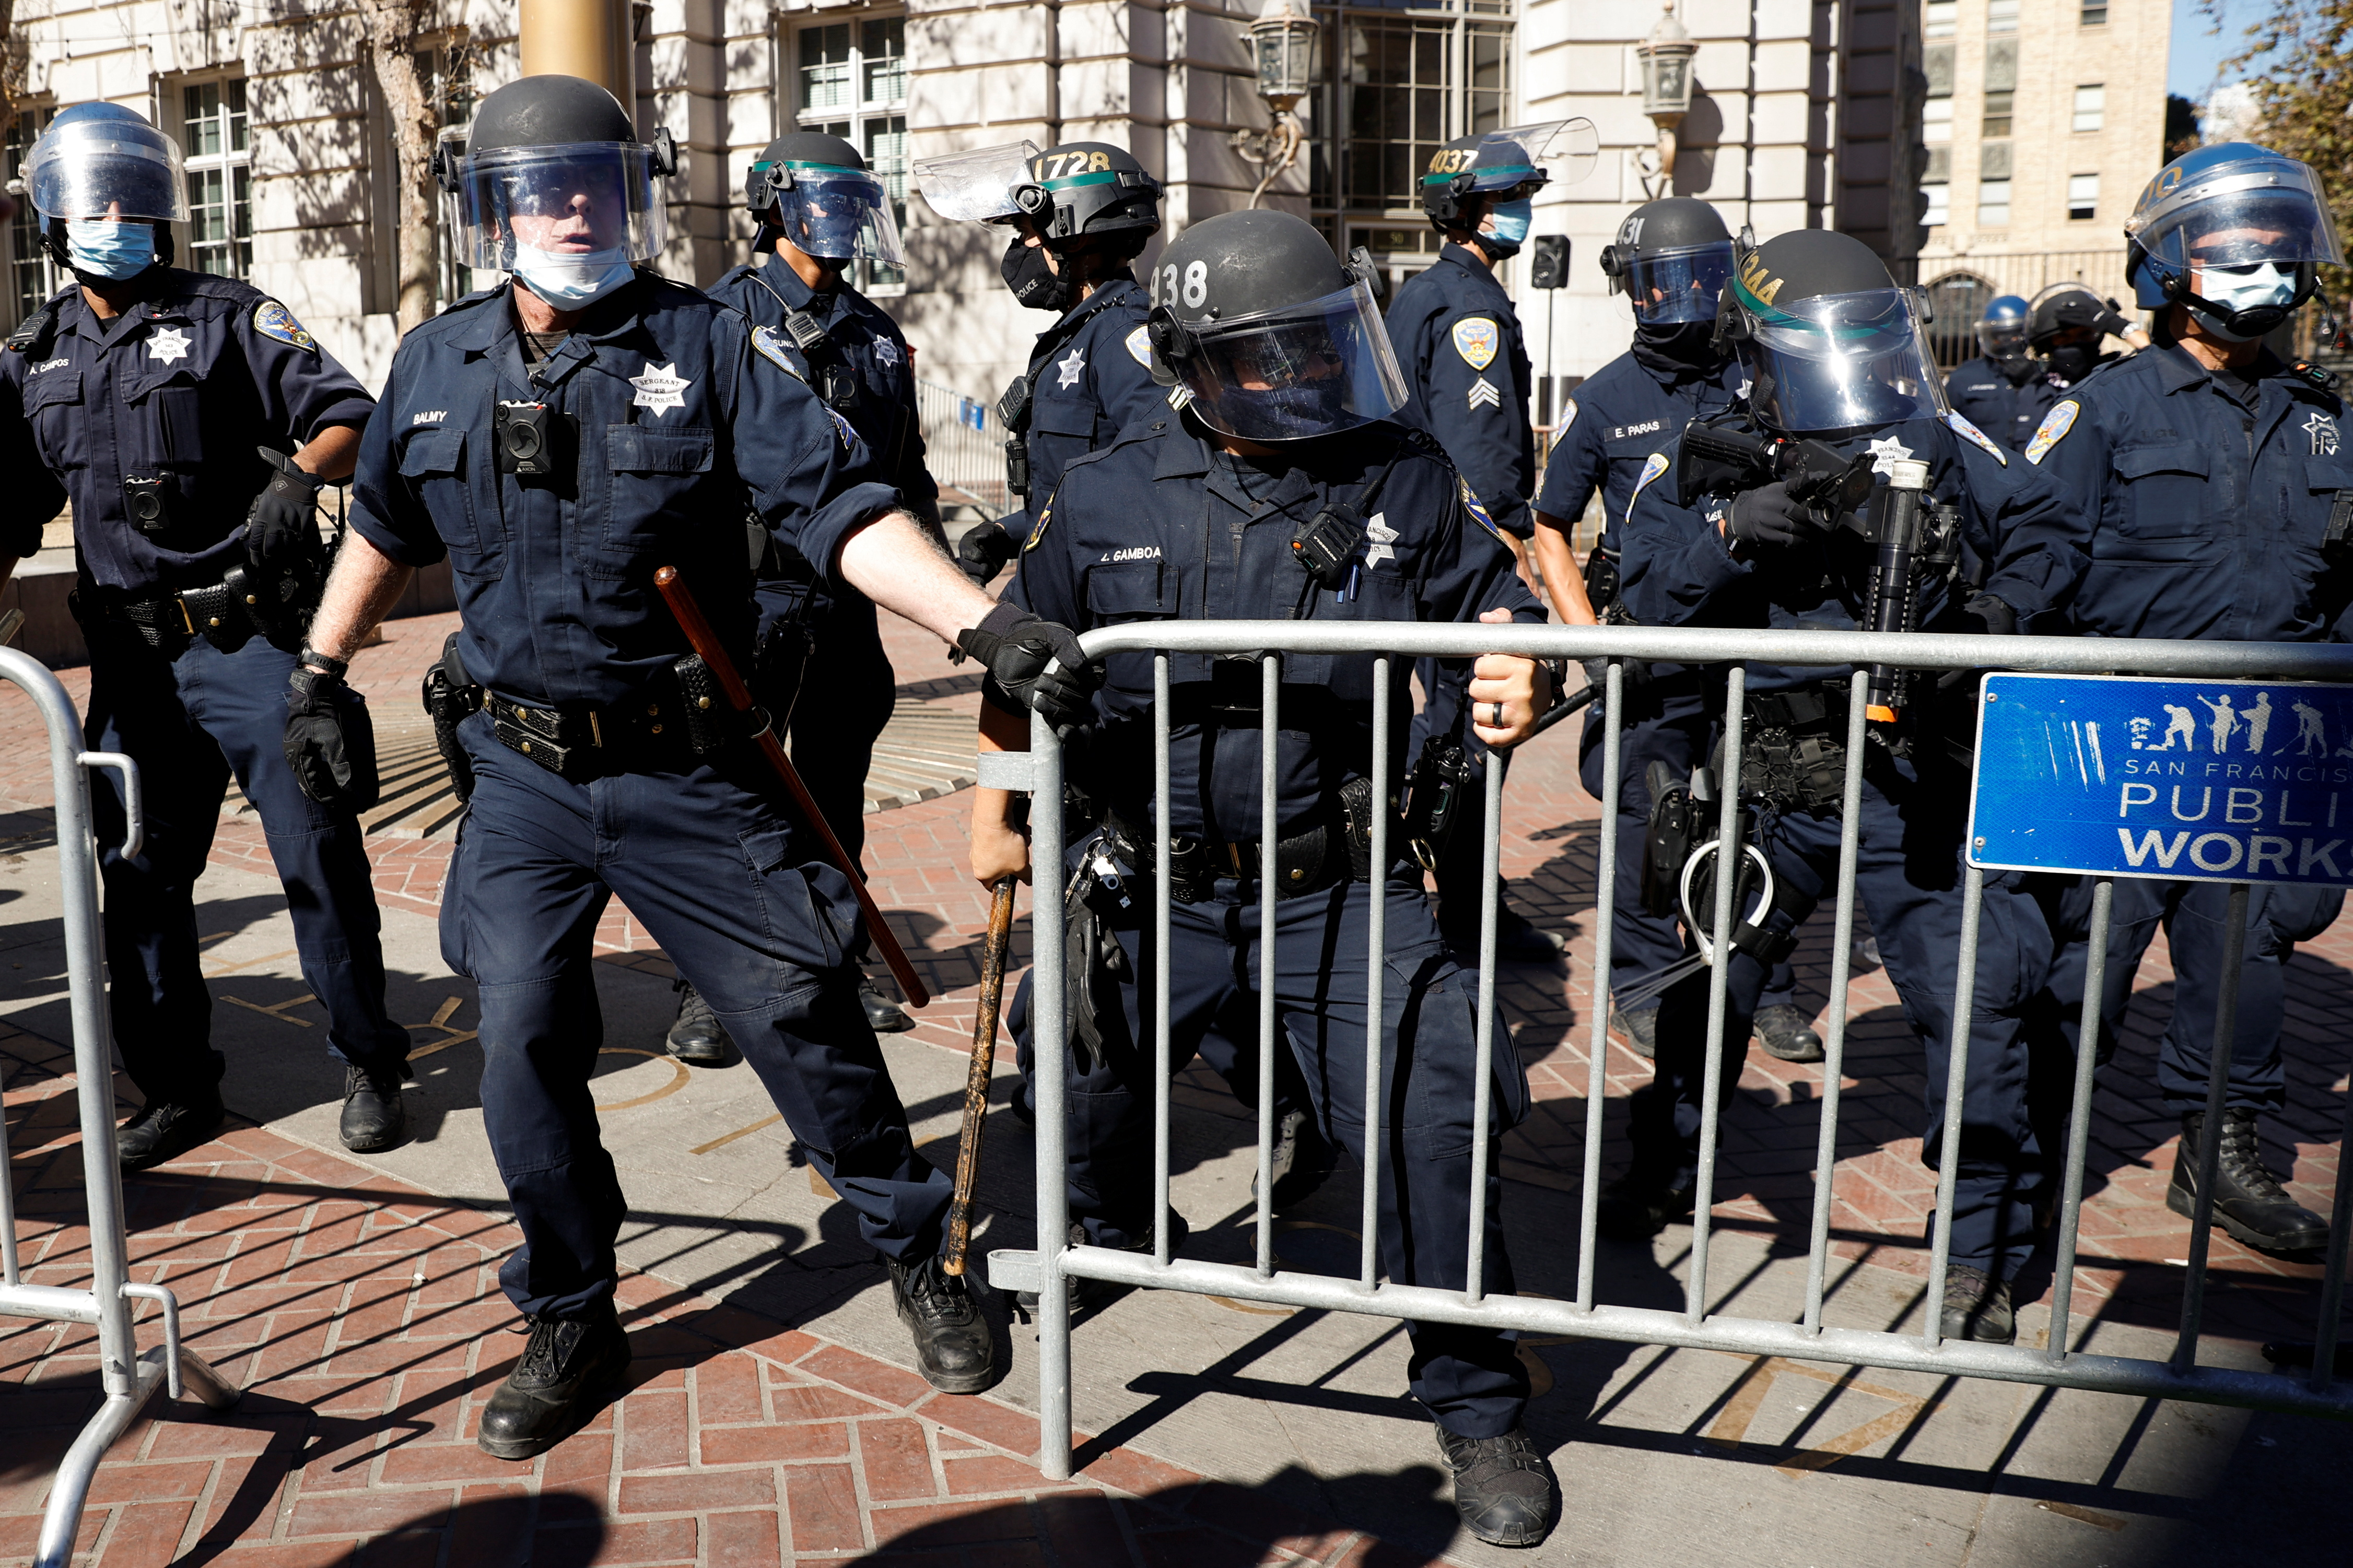 Officers with the San Francisco Police Department work to close a barricade during a rally and a counter-demonstration at the United Nations Plaza in San Francisco, California, U.S. October 17, 2020. REUTERS/Stephen Lam